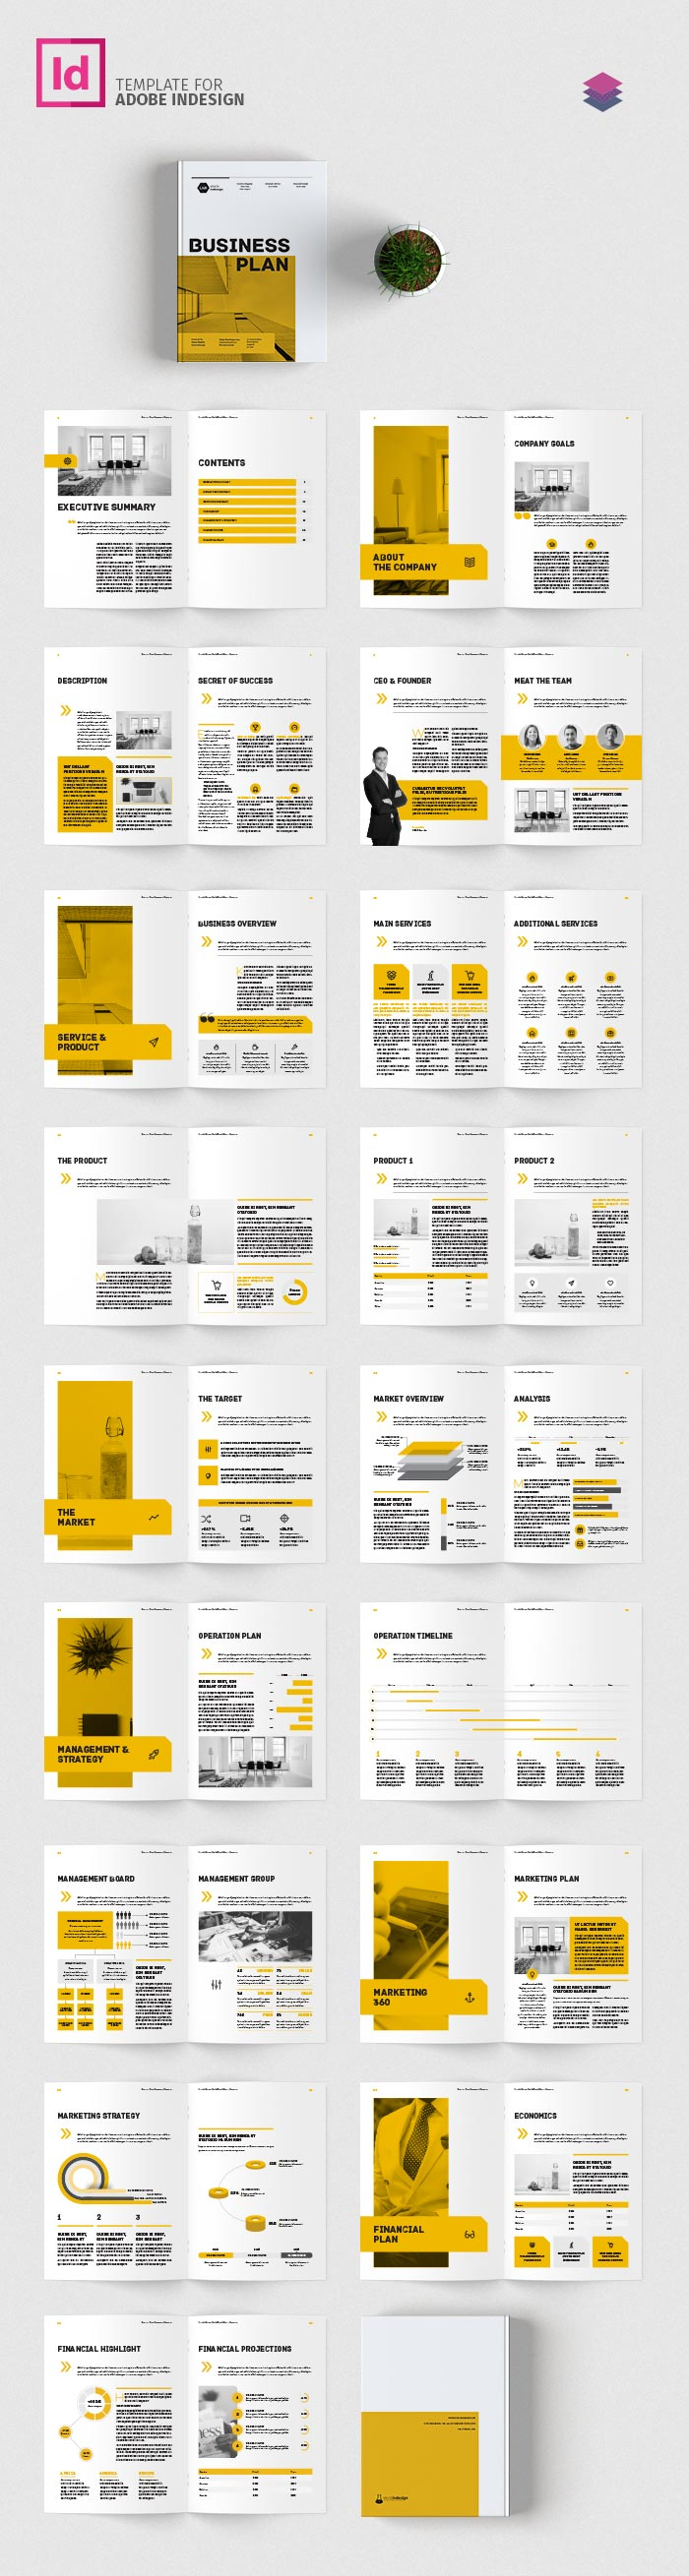 Business Plan Template Adobe InDesign Template - Business plan template indesign